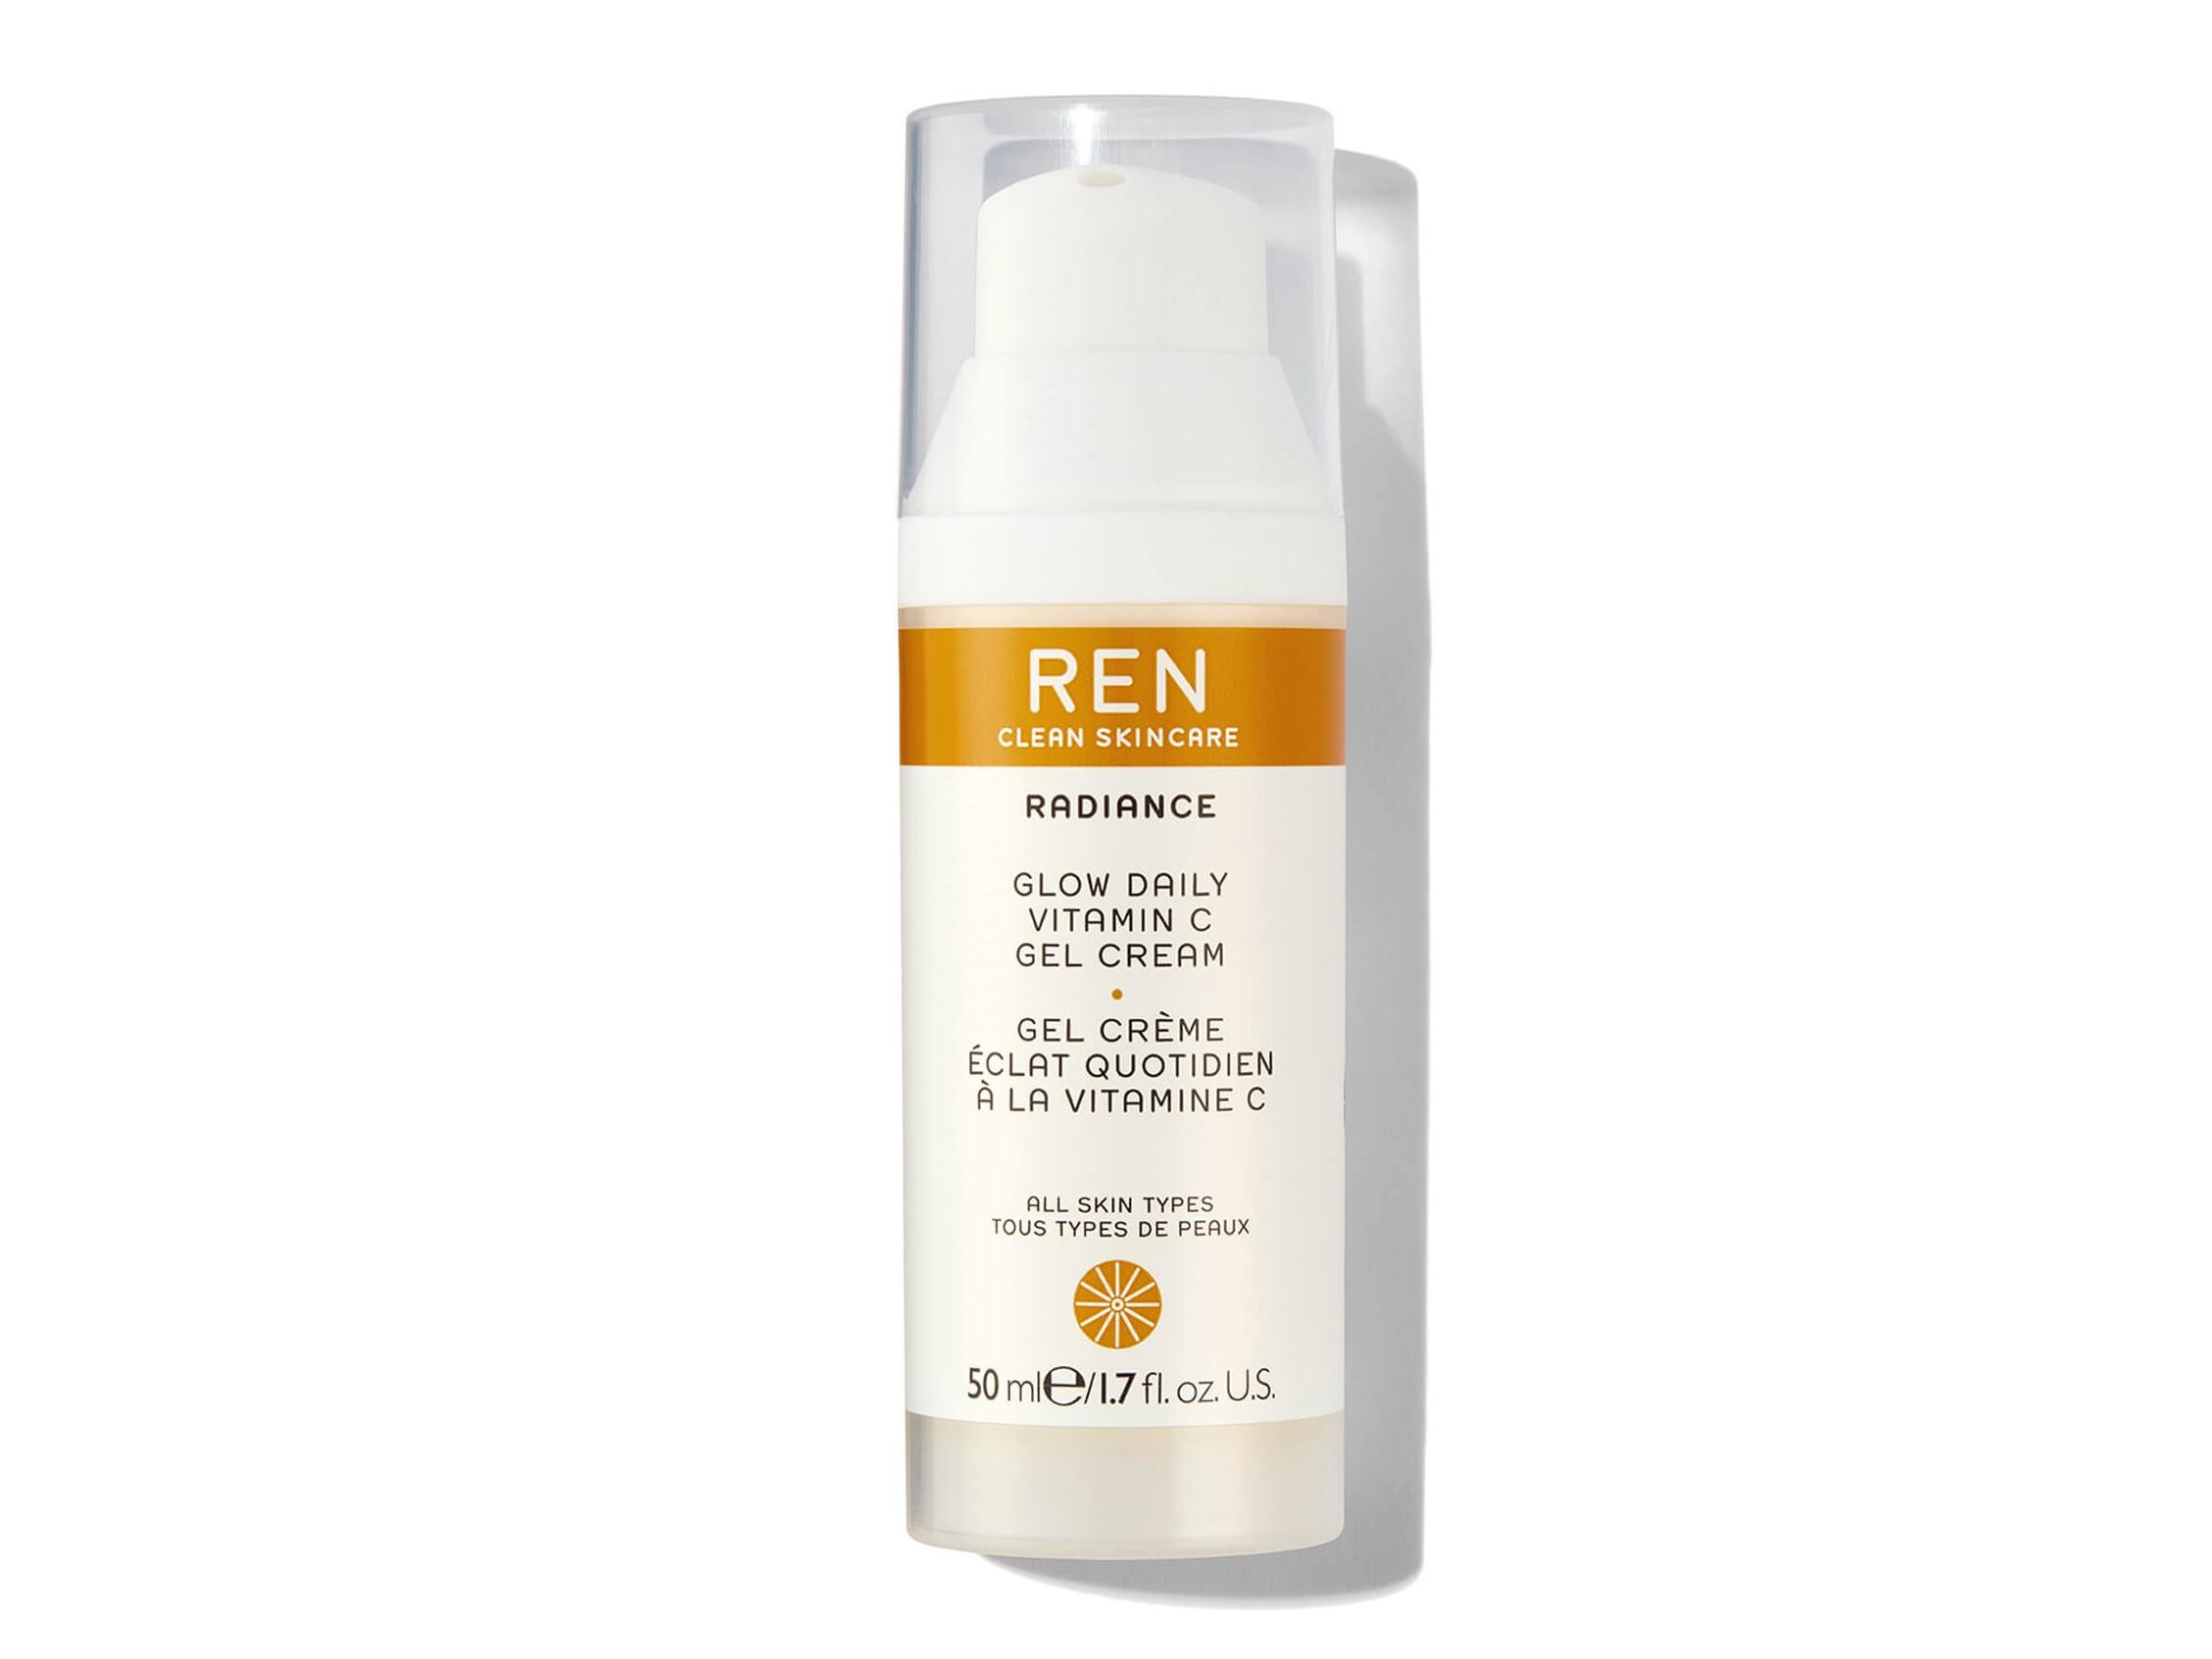 12 best vitamin c skincare products | The Independent